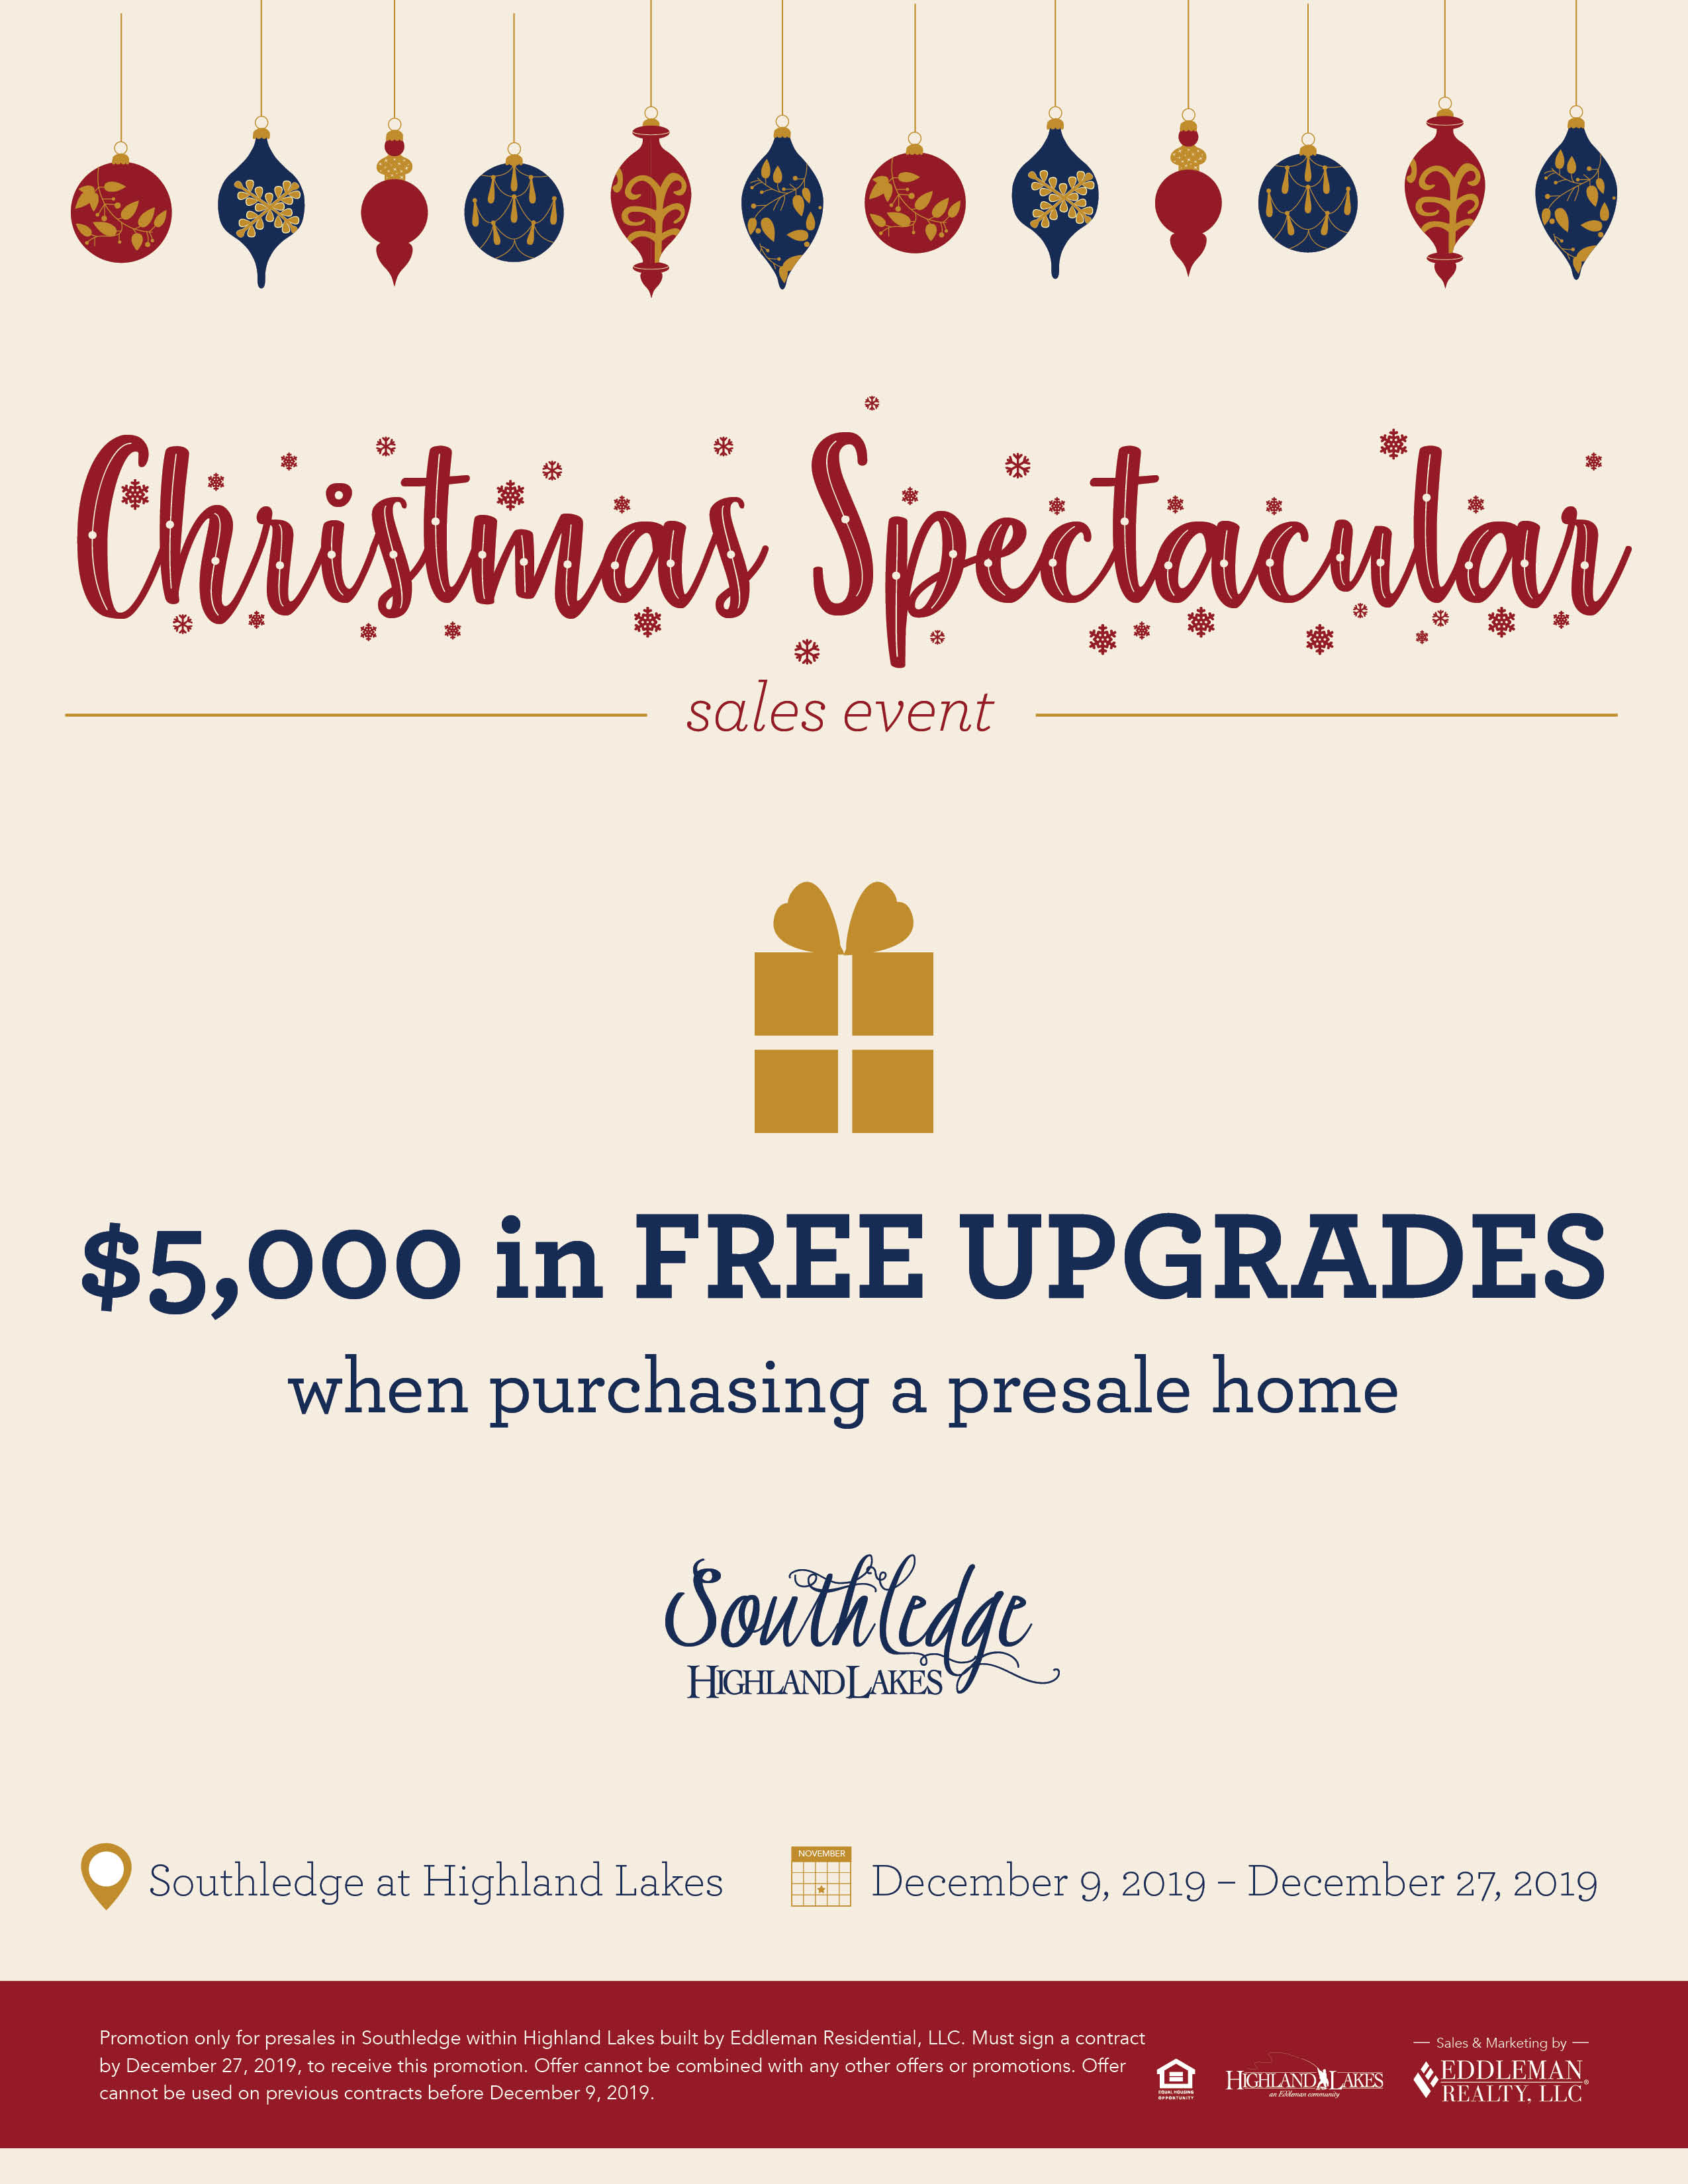 2019 Christmas Spectacular Sales Event